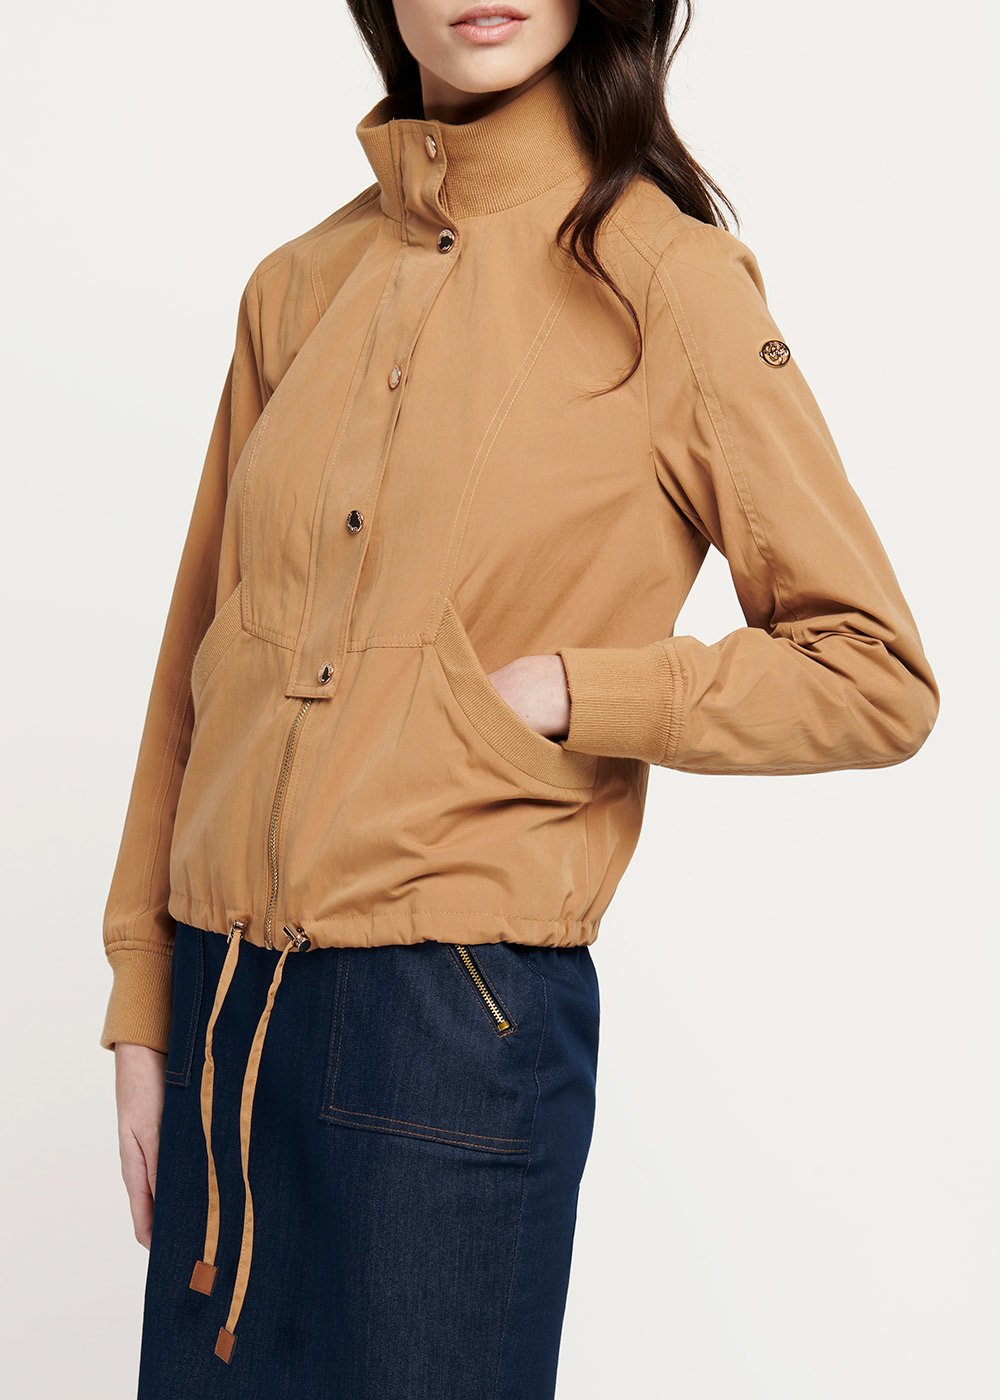 Garret jacket in tobacco-coloured cotton - Tobacco - Woman